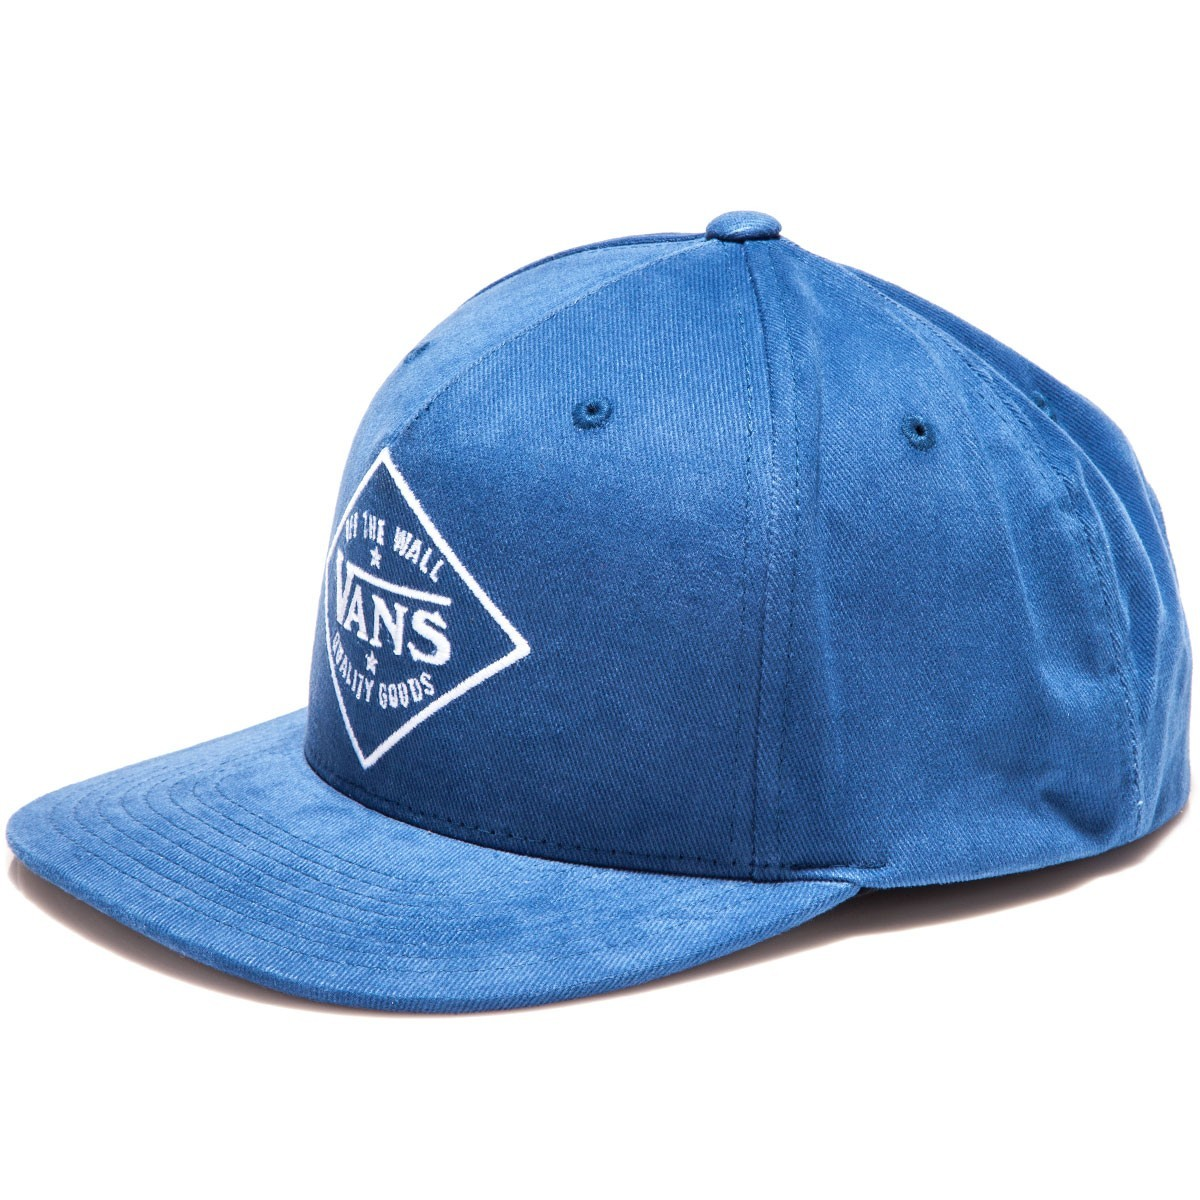 Vans Badge Snapback Hat - Blue Print 110742cbaf3